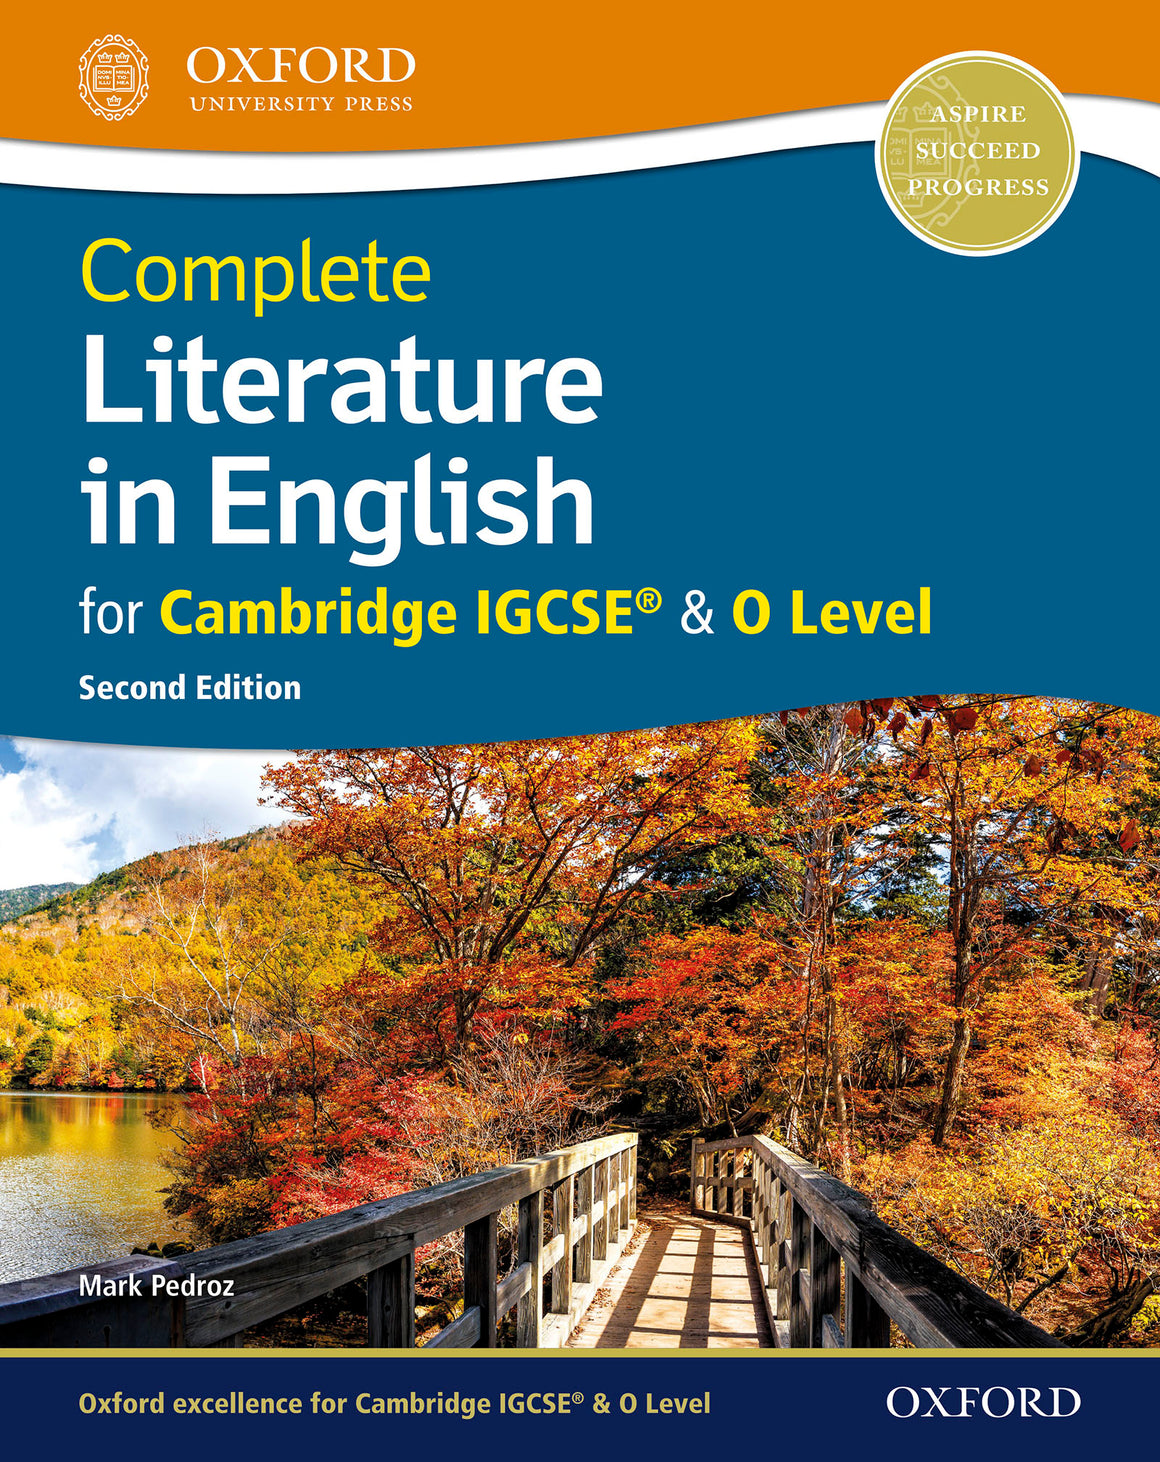 Complete Literature in English for Cambridge IGCSE® & O Level